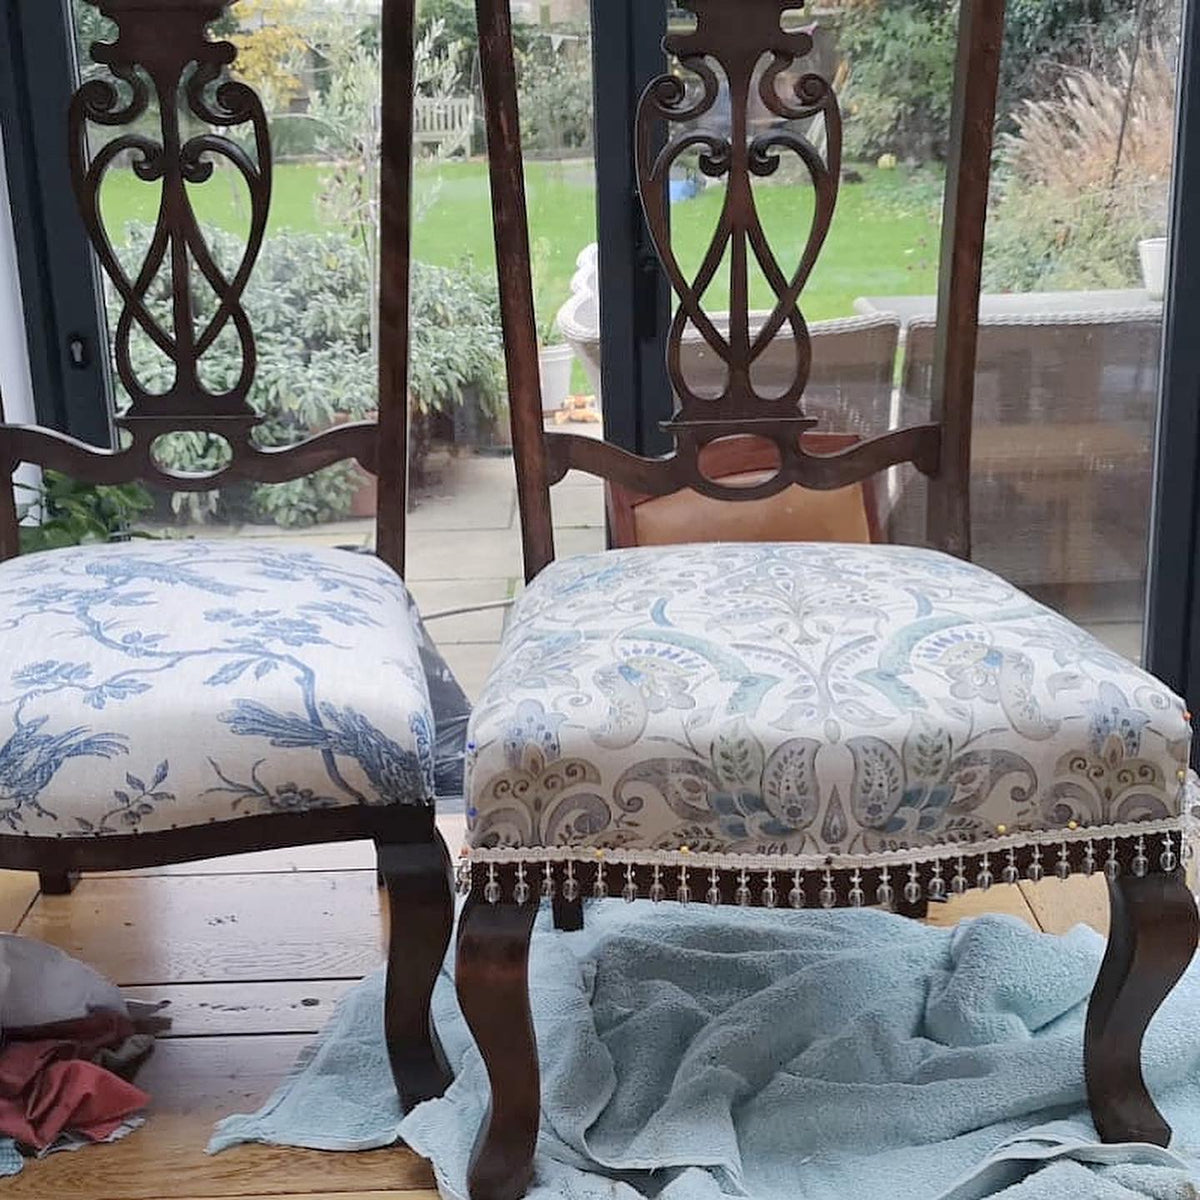 2021 Saturday Upholstery Classes